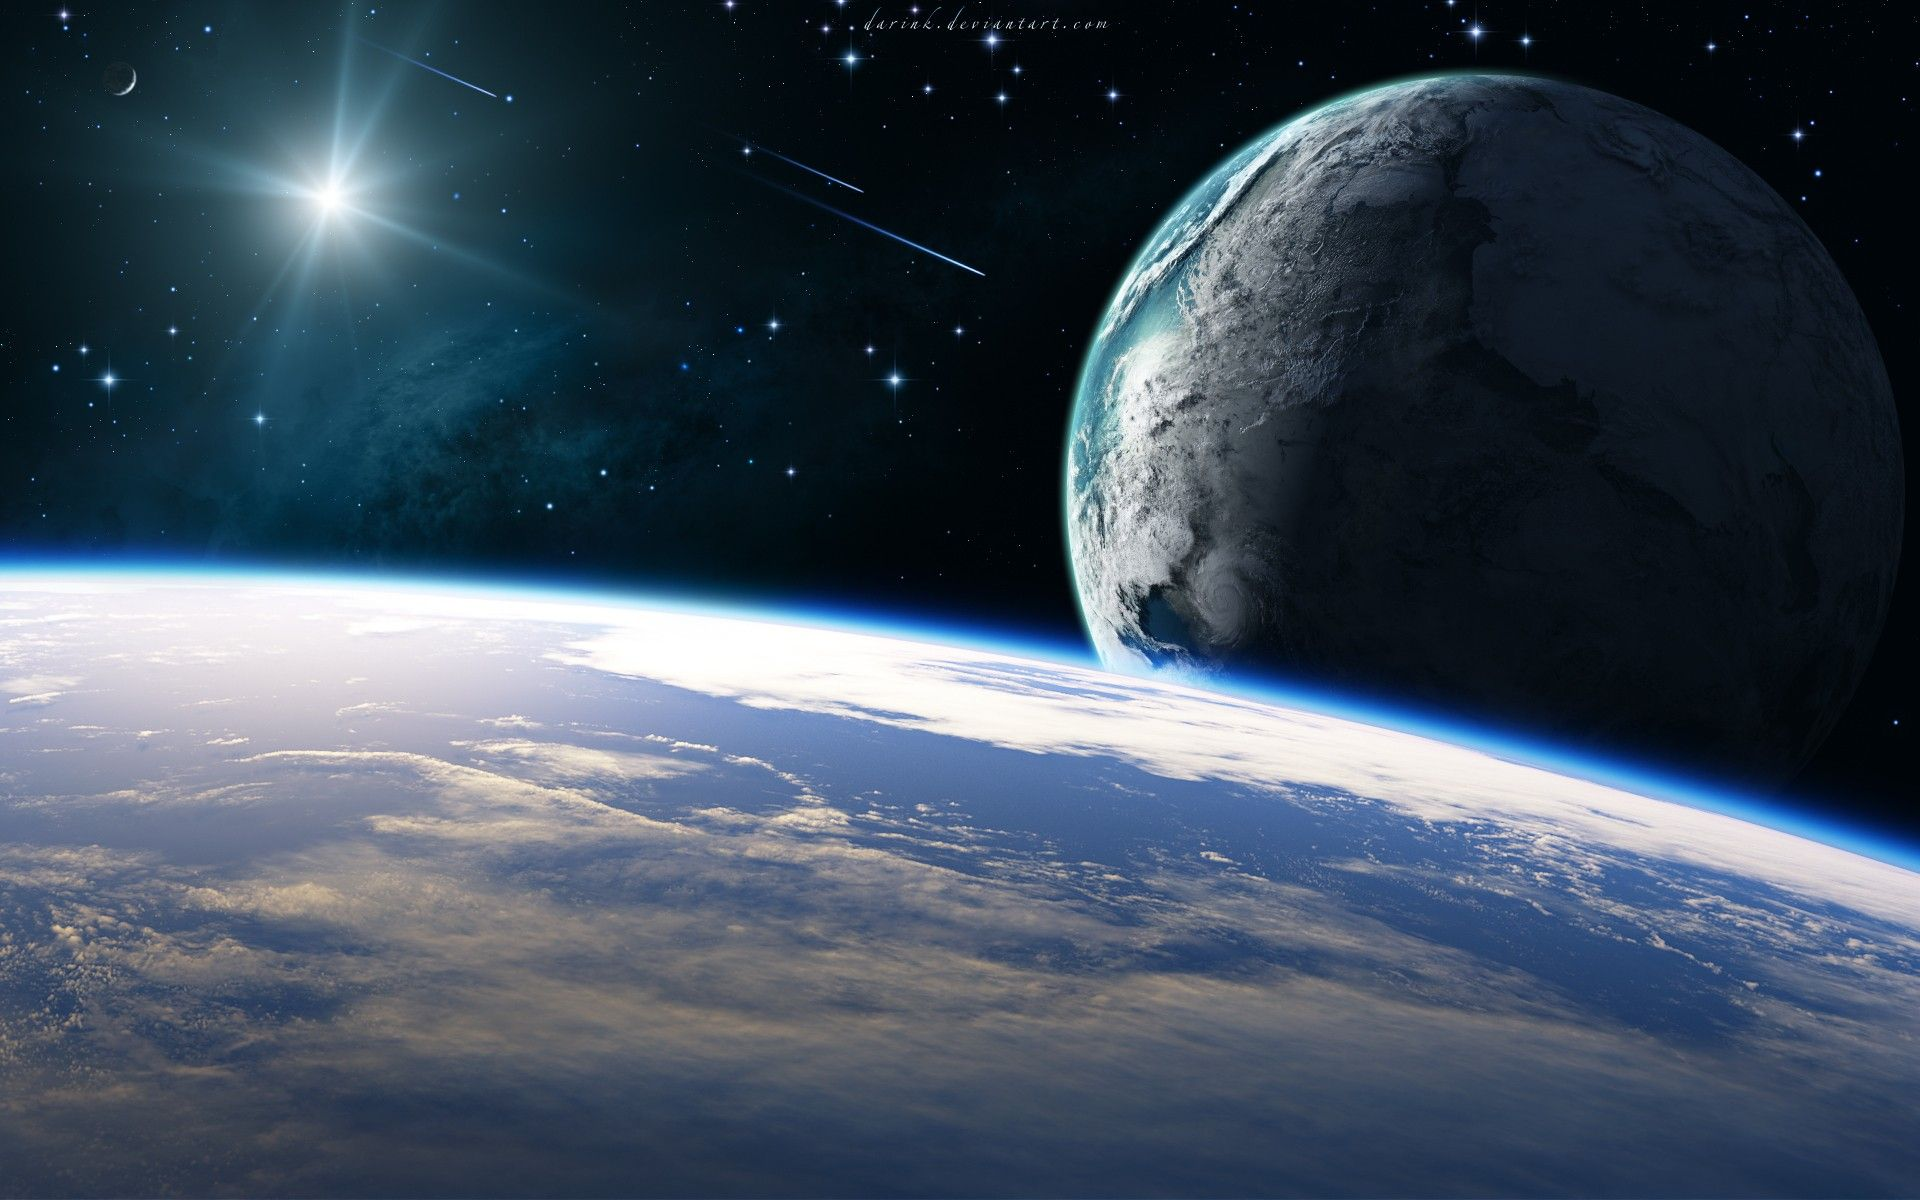 Earth From Space Wallpapers - Top Free ...